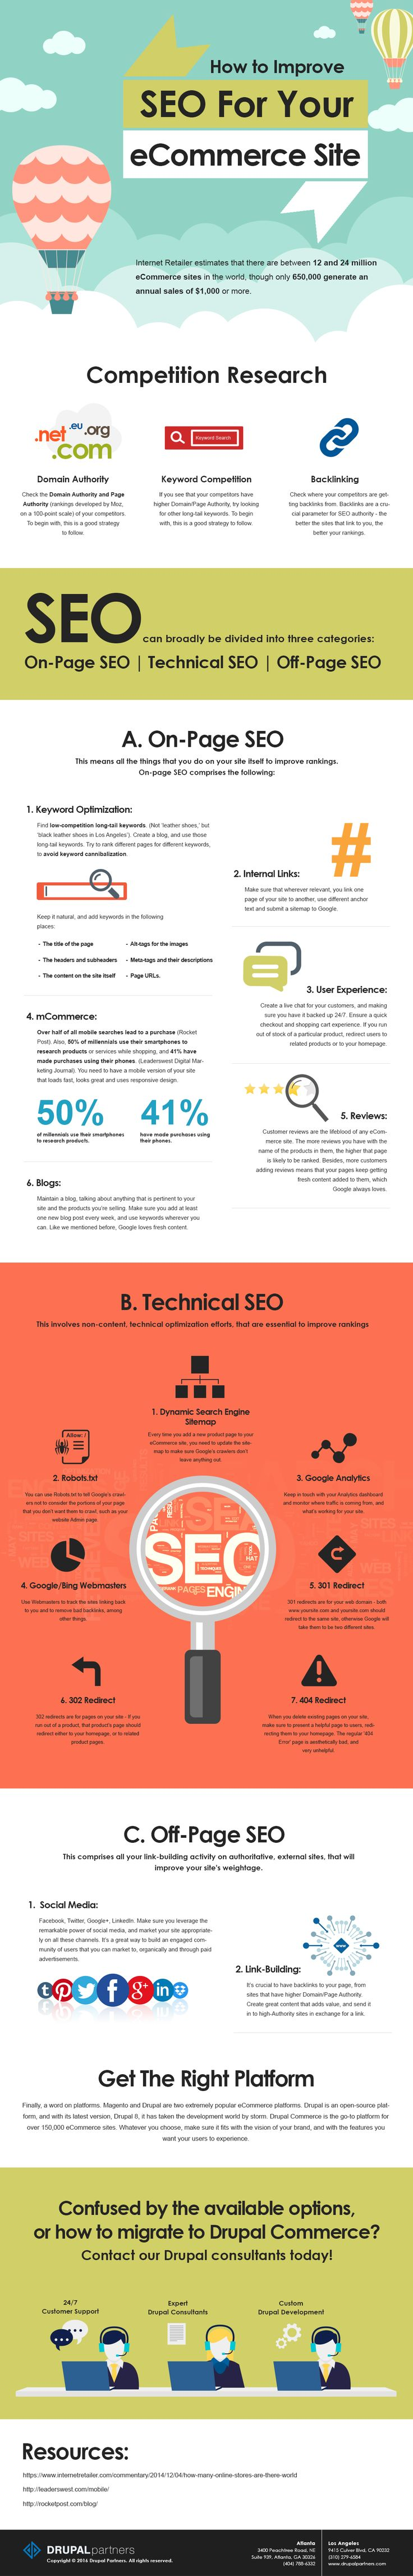 92 best seo infographics images on pinterest infographics how to improve seo for your ecommerce site infographic gamestrikefo Choice Image